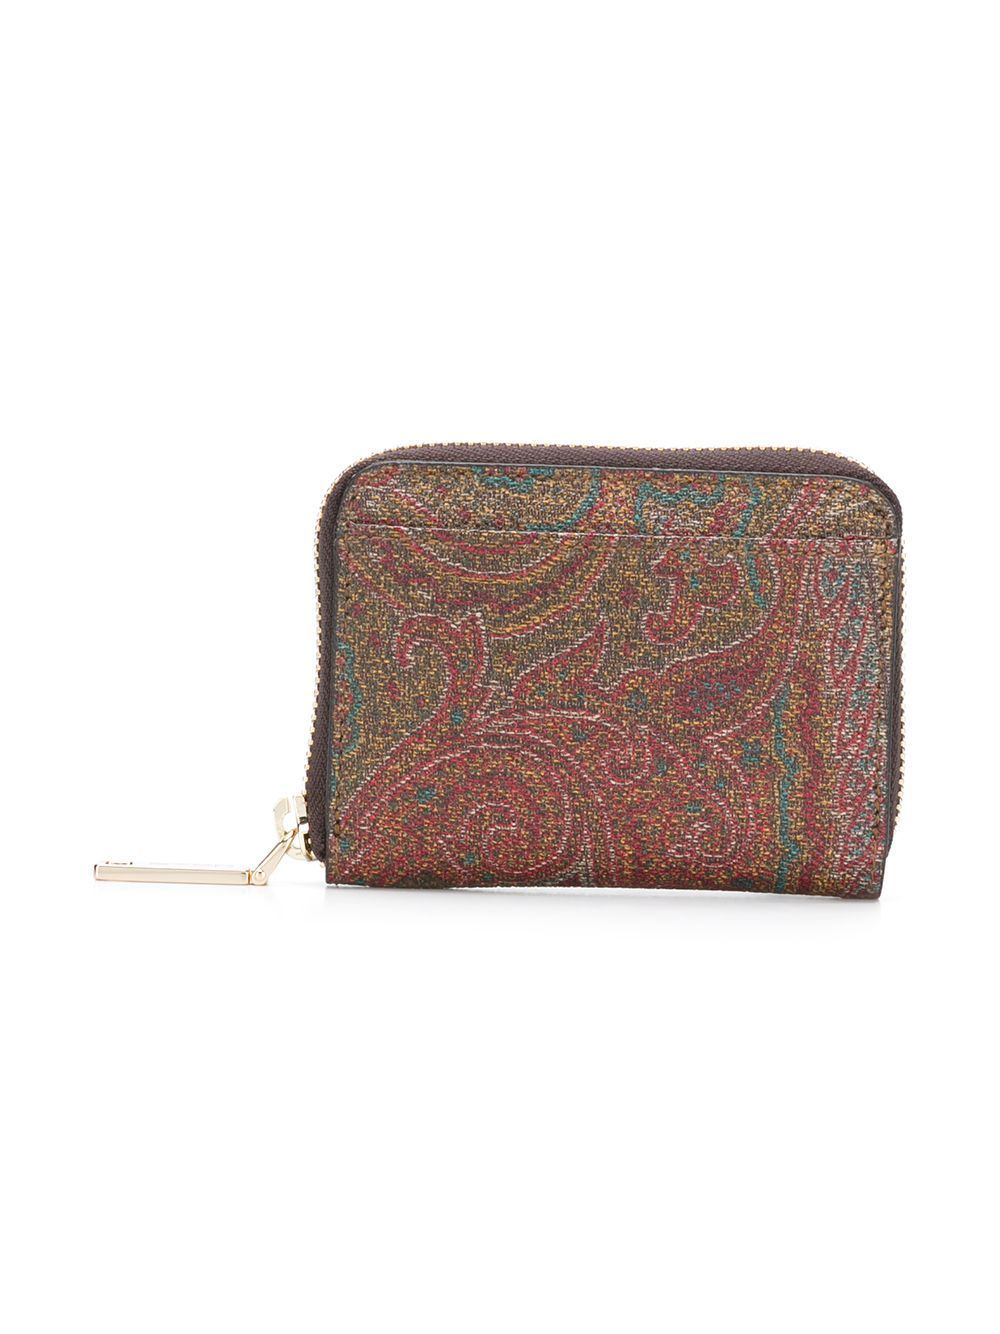 ETRO MEN'S 0H6848010600 MULTICOLOR LEATHER WALLET